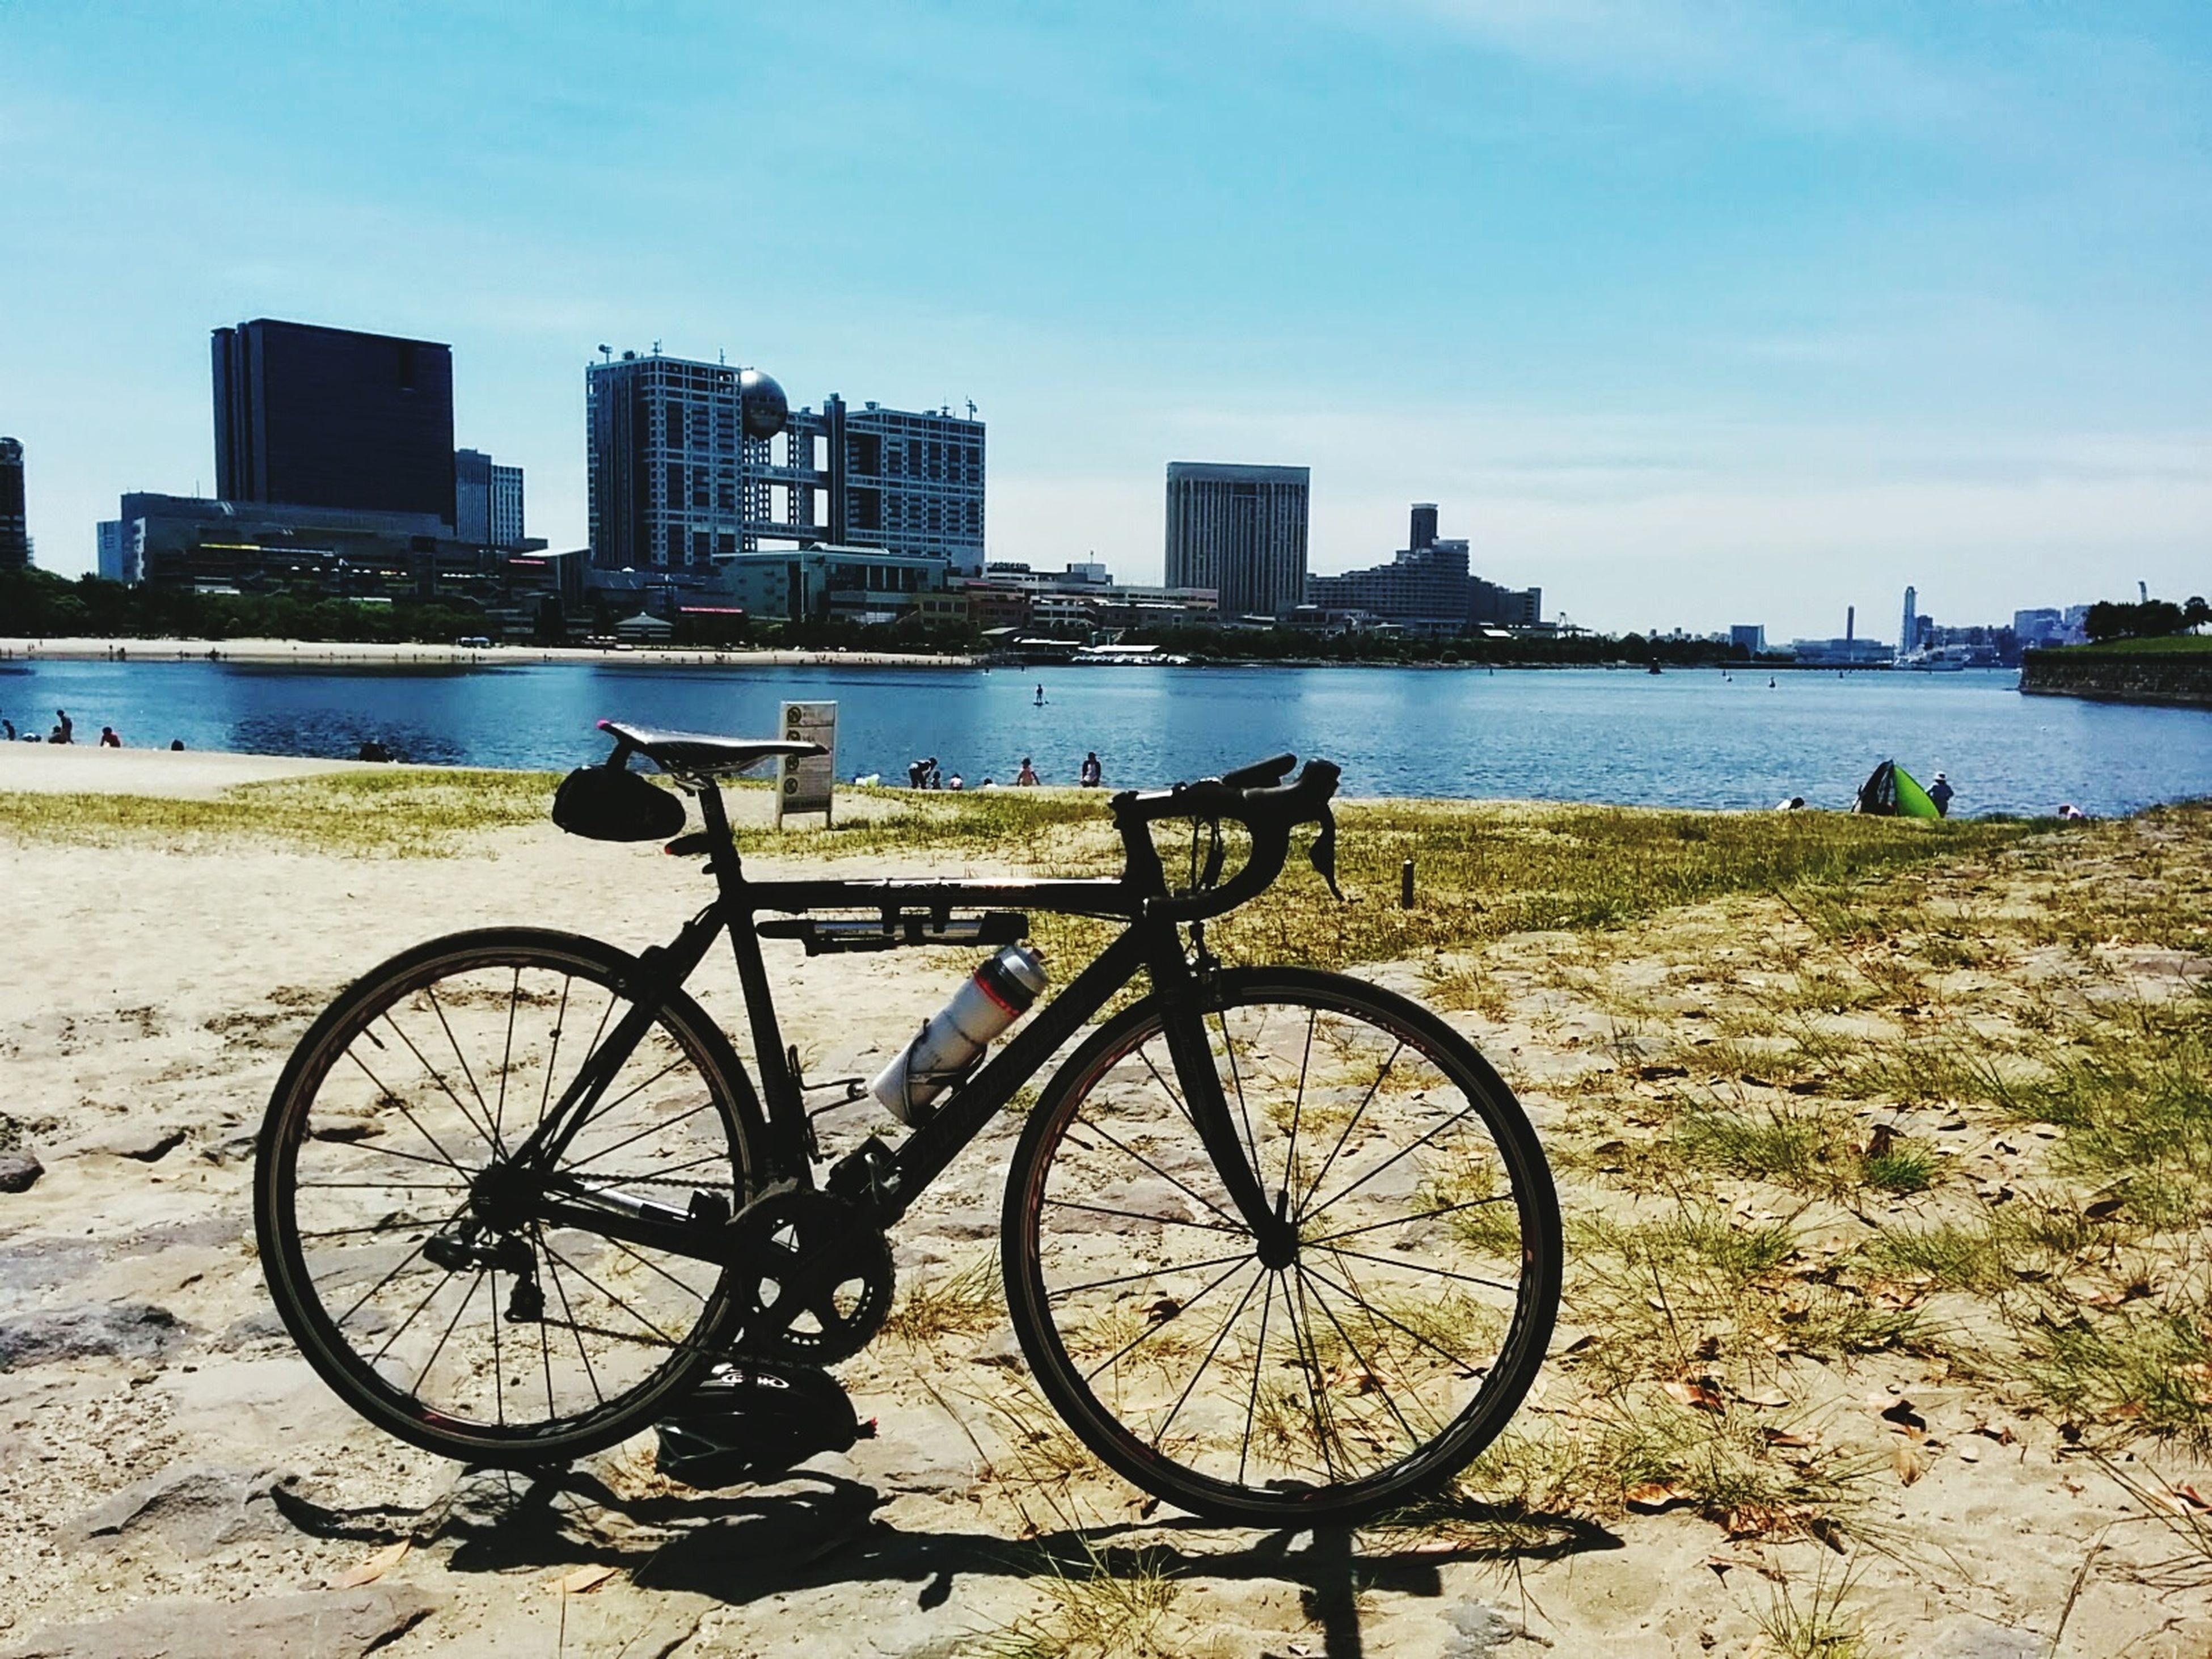 bicycle, transportation, mode of transport, land vehicle, stationary, parking, parked, water, sky, architecture, built structure, building exterior, outdoors, river, day, travel, no people, cycle, sea, leaning